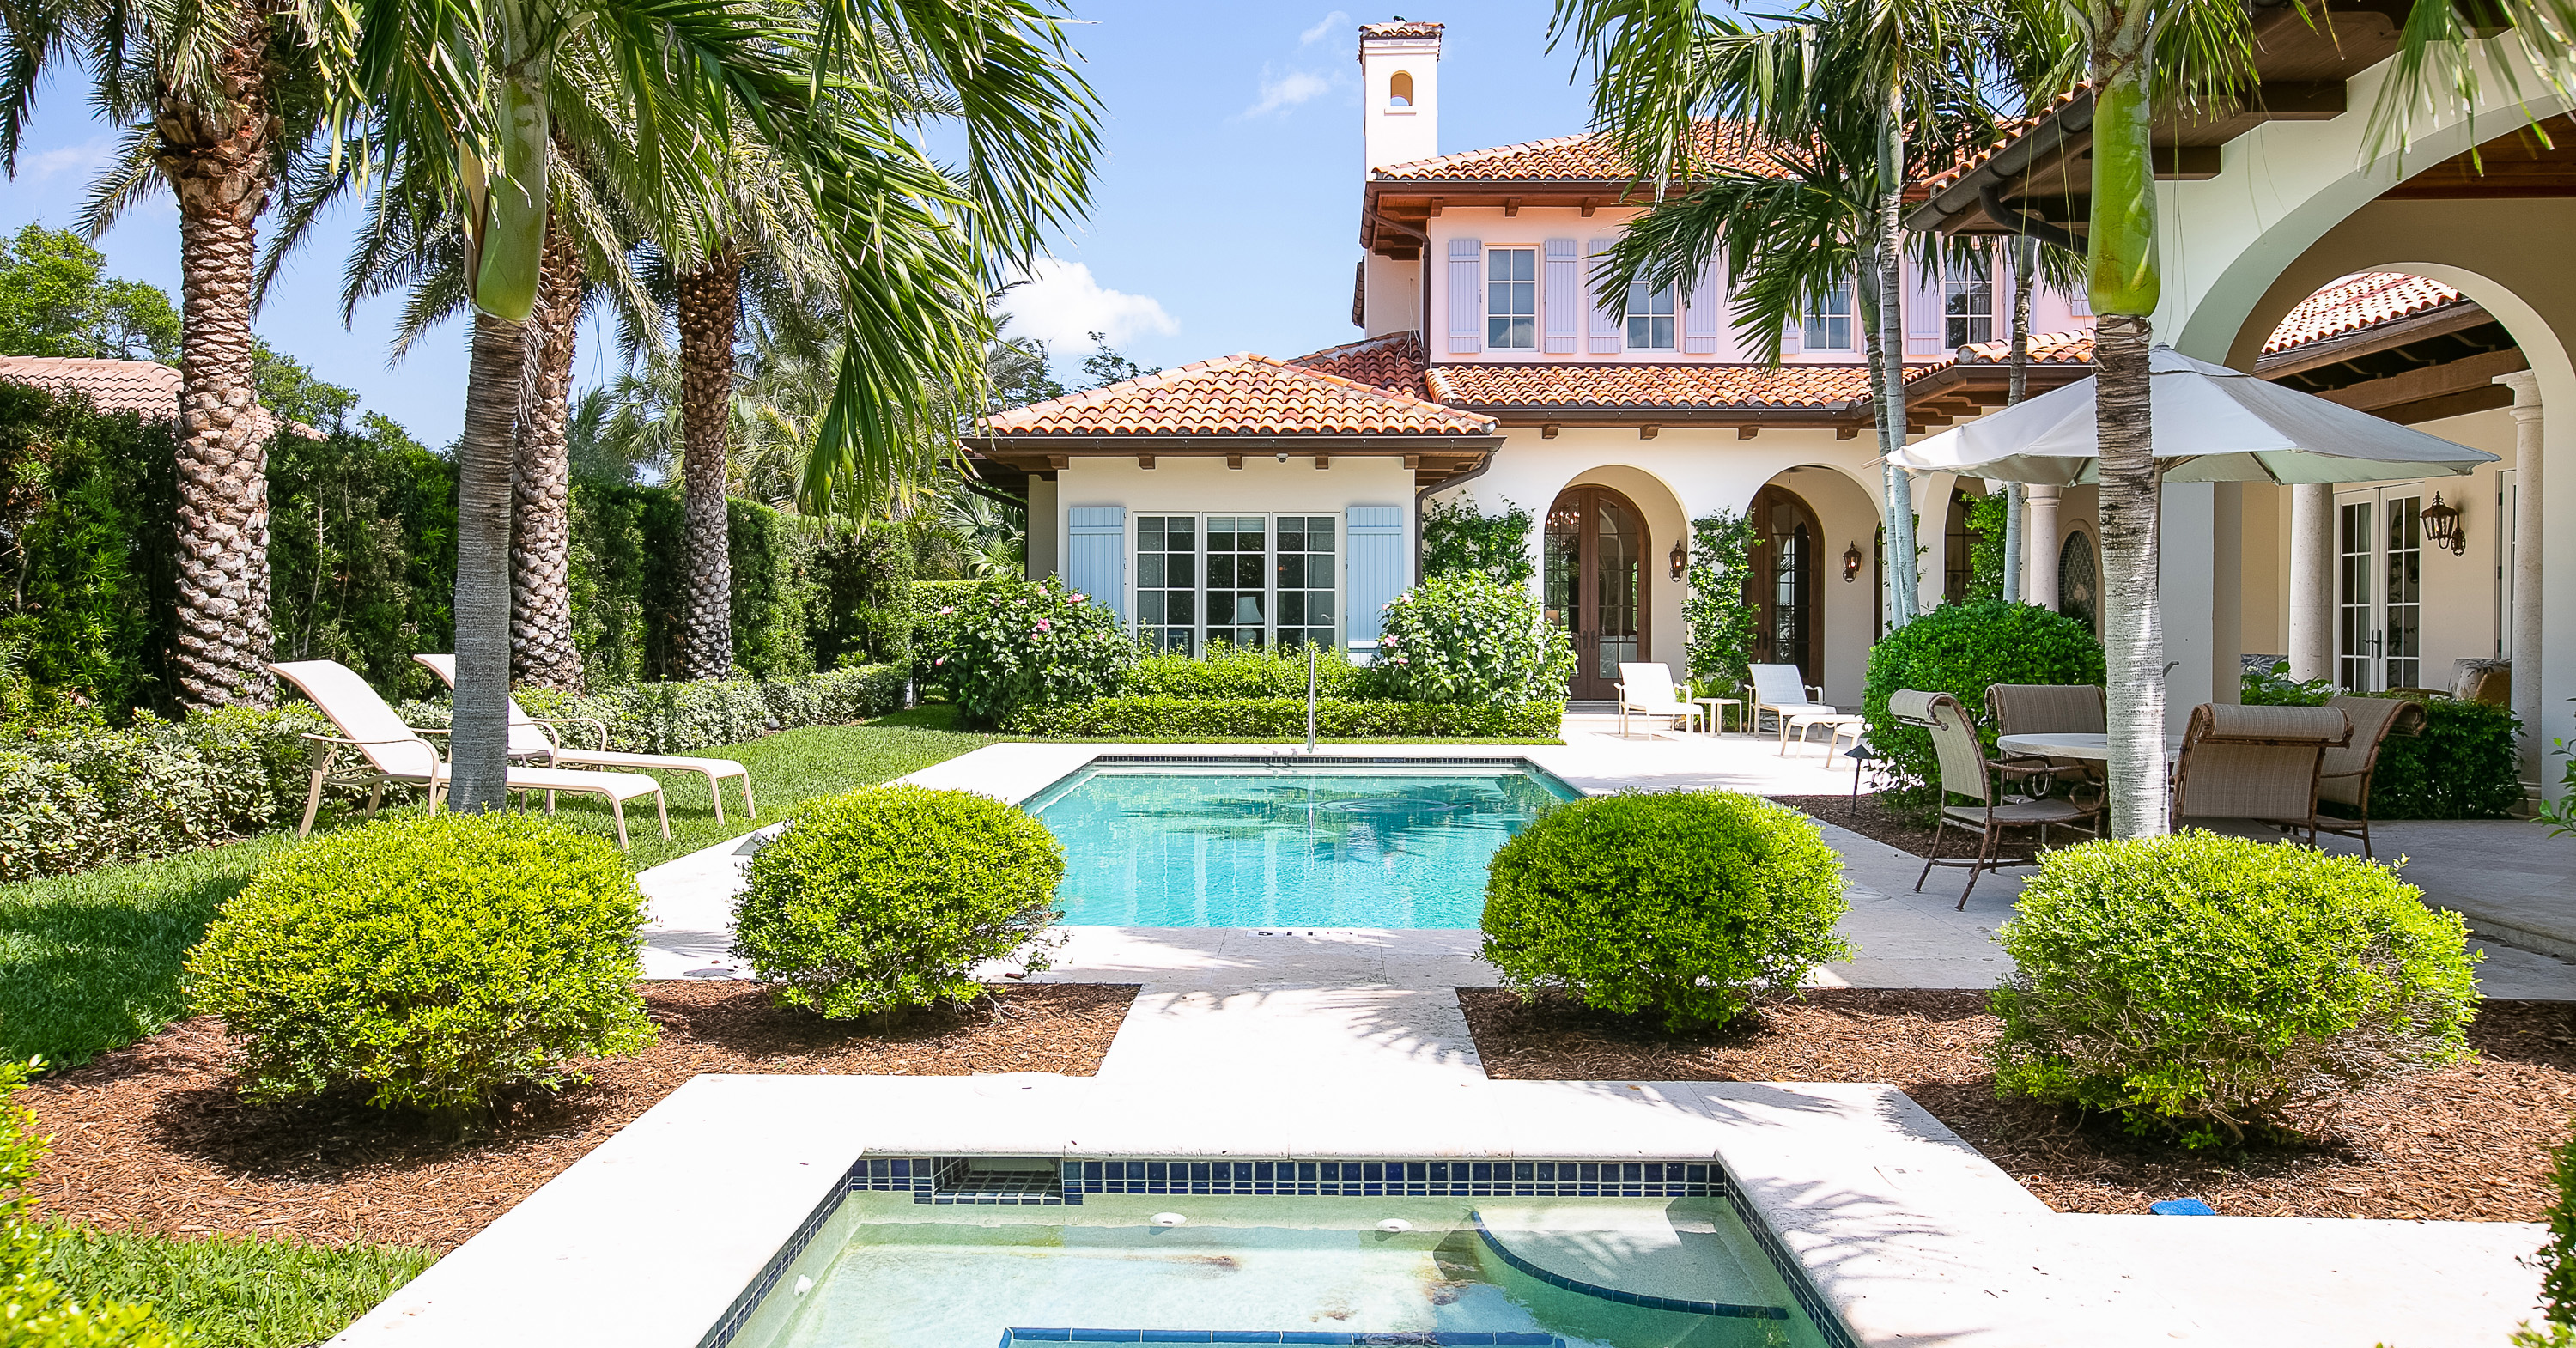 Exterior of backyard of large luxury mediterranean home with pool, hot tub and large palm trees